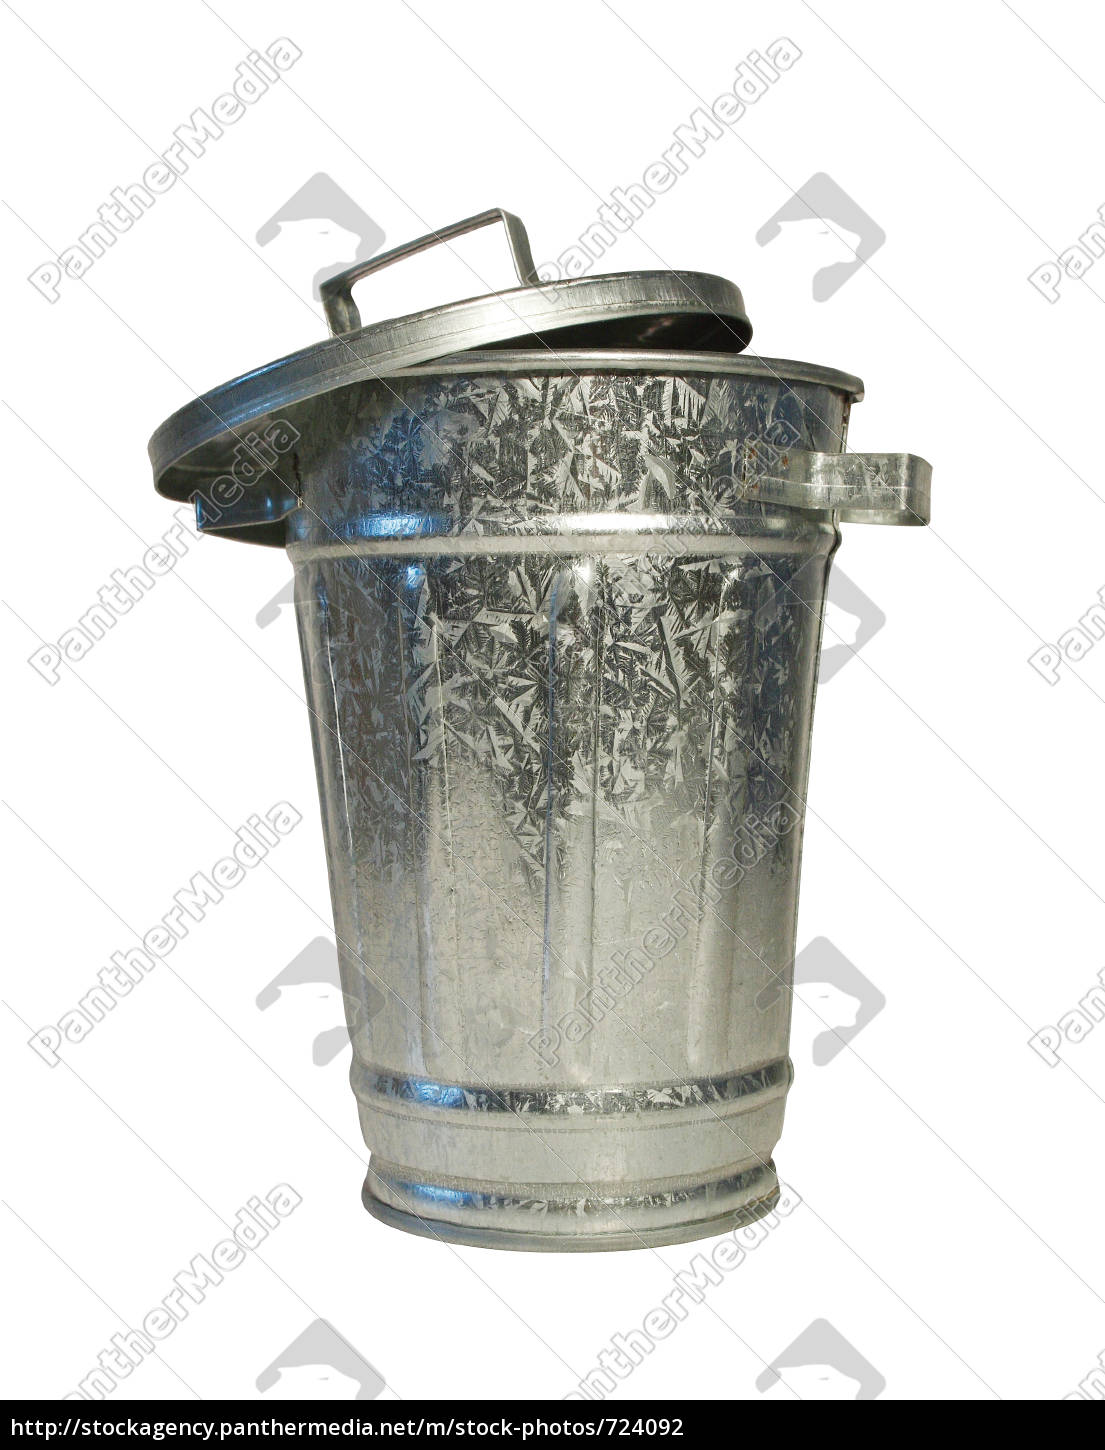 dustbin, -, garbage, can, 3 - 724092